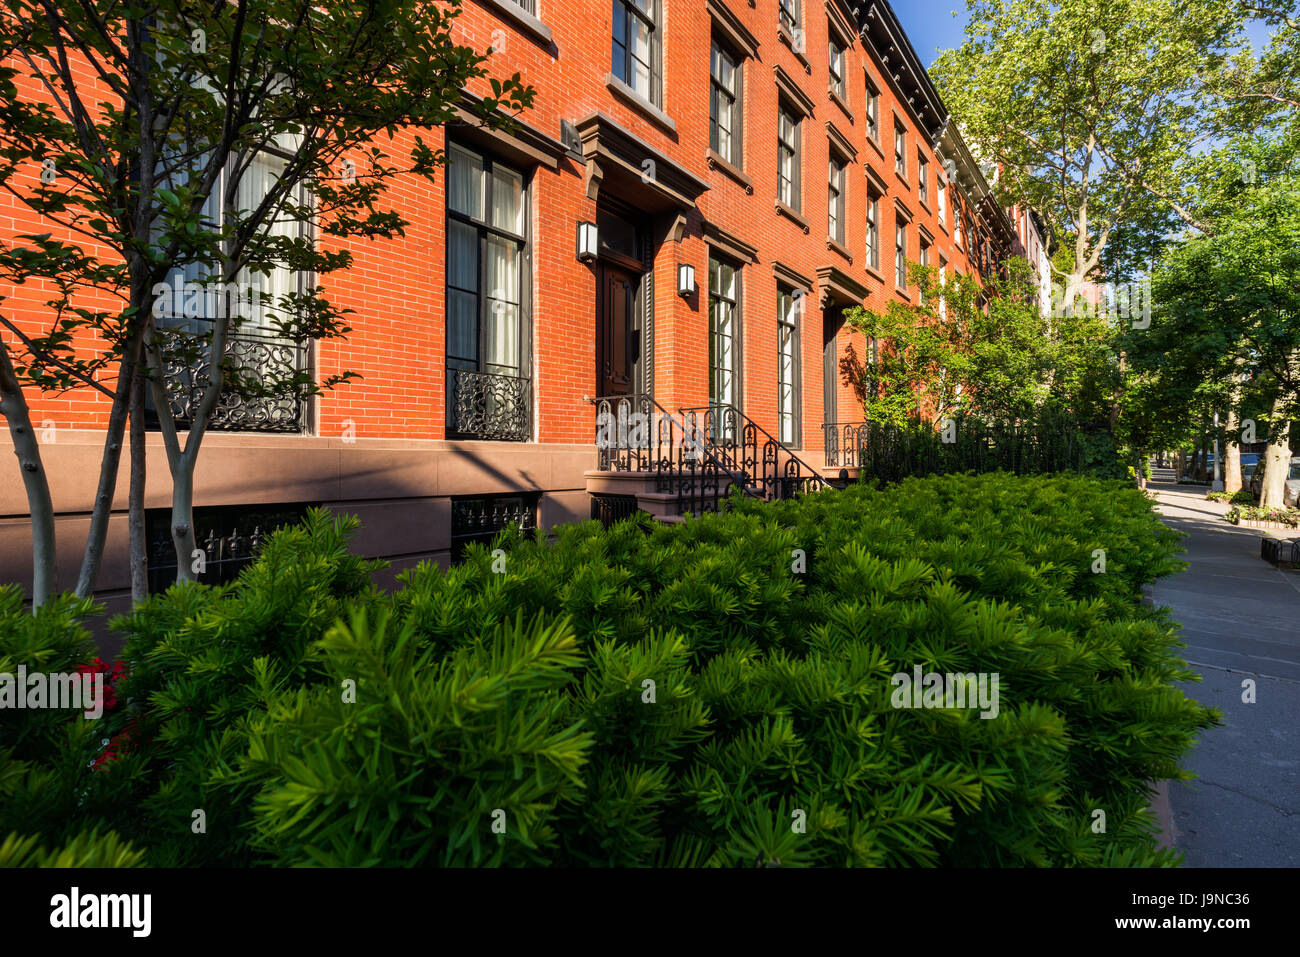 Nineteenth century townhouses with brick facades and wrought iron railings. Summer in Chelsea. Manhattan, New York - Stock Image